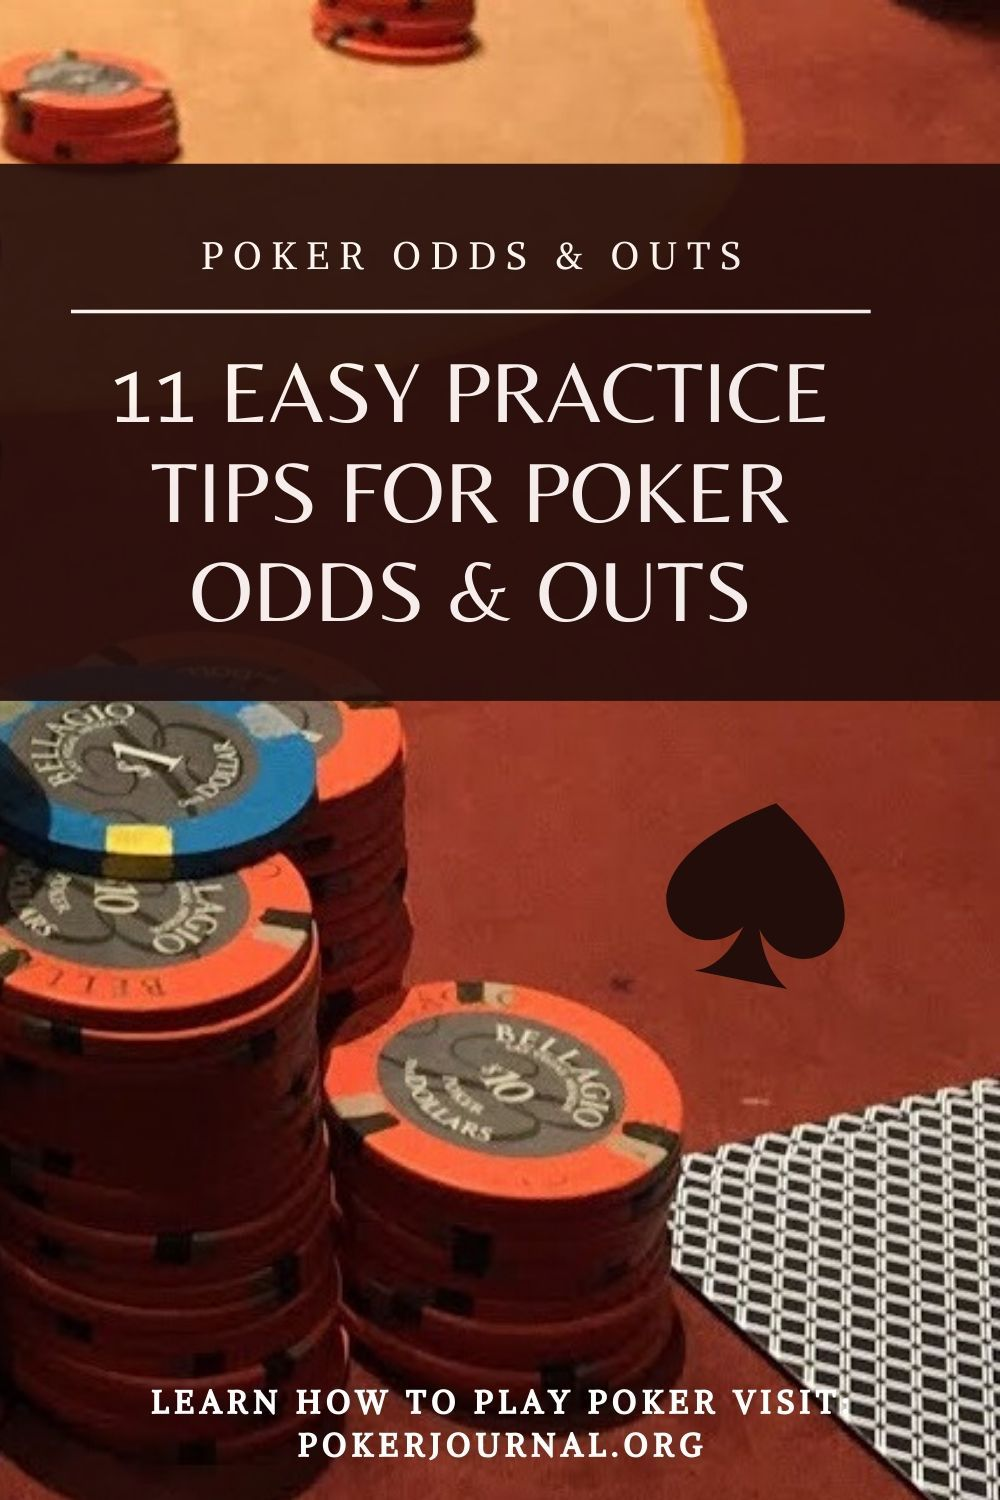 Practice Tips for Poker Odds & Outs Poker for Beginners